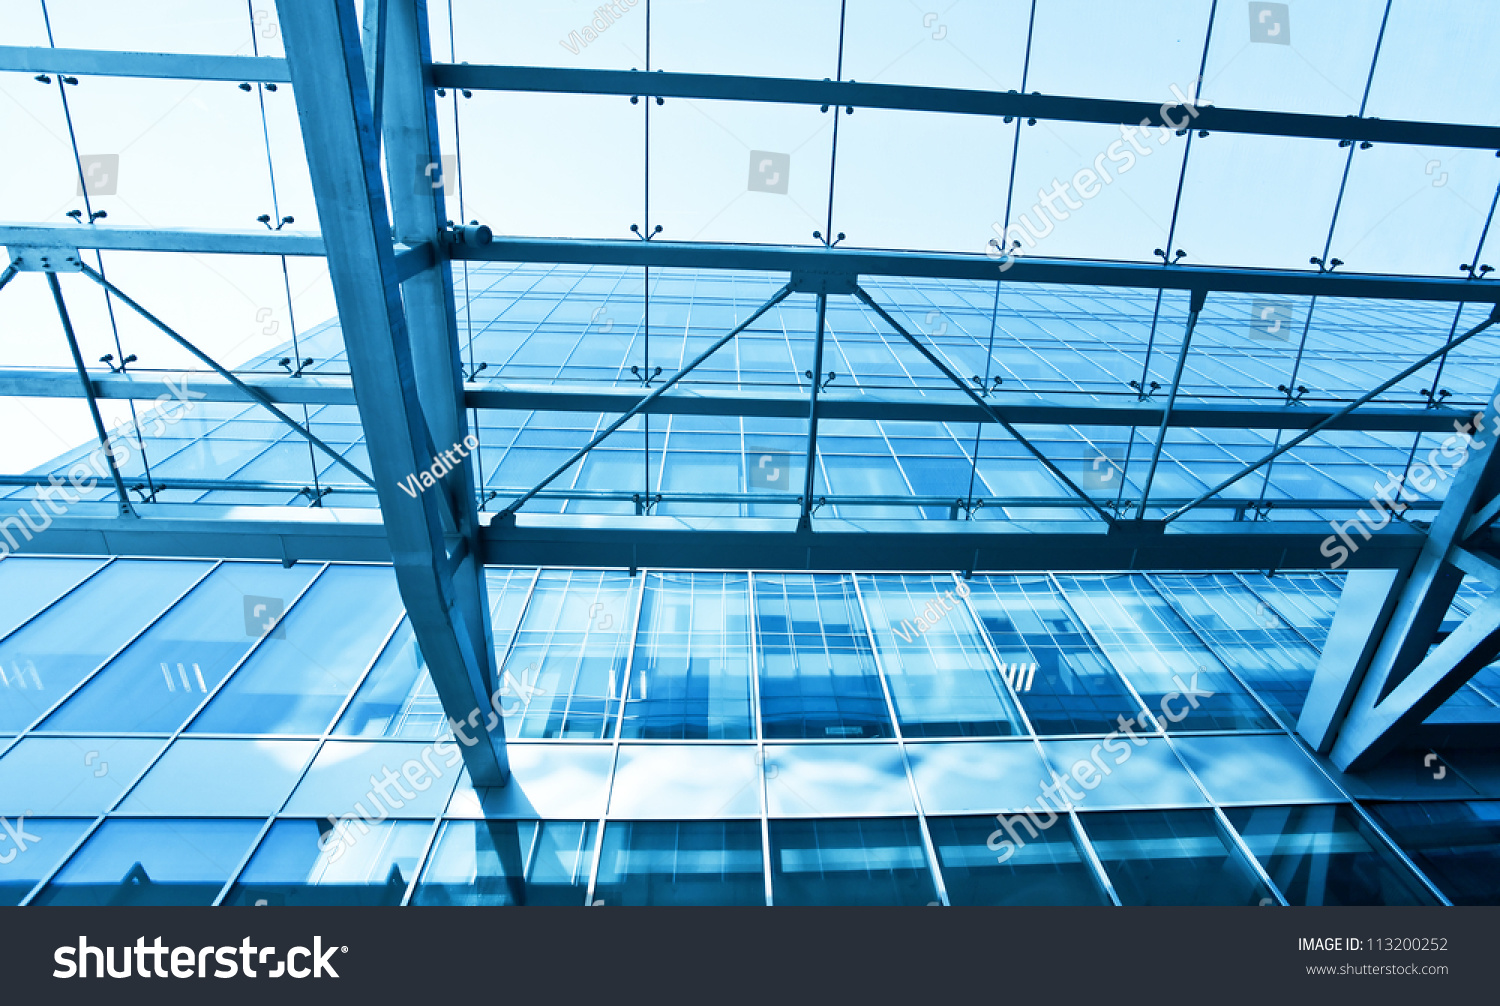 the glass ceiling a human capitalist perspective There is a glass ceiling but there are also sticky floors for some great suggestions for overcoming sticky floors women need to help women and men need to help too.